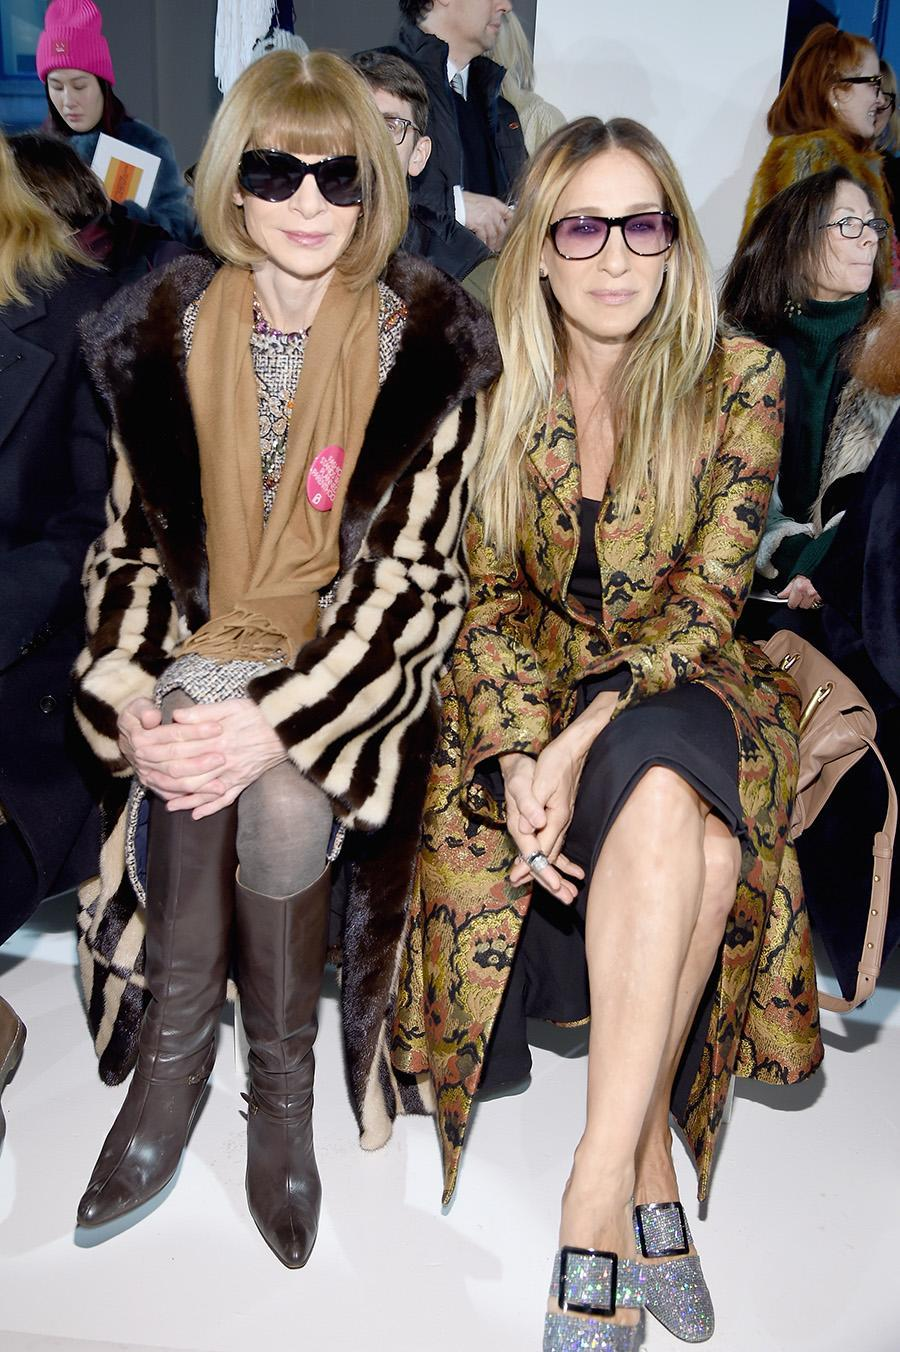 <p>Sarah Jessica Parker cut a stylish figure in a patterned statement coat alongside Vogue editor-in-chief Anna Wintour in the front row. (Photo: Getty Images) </p>